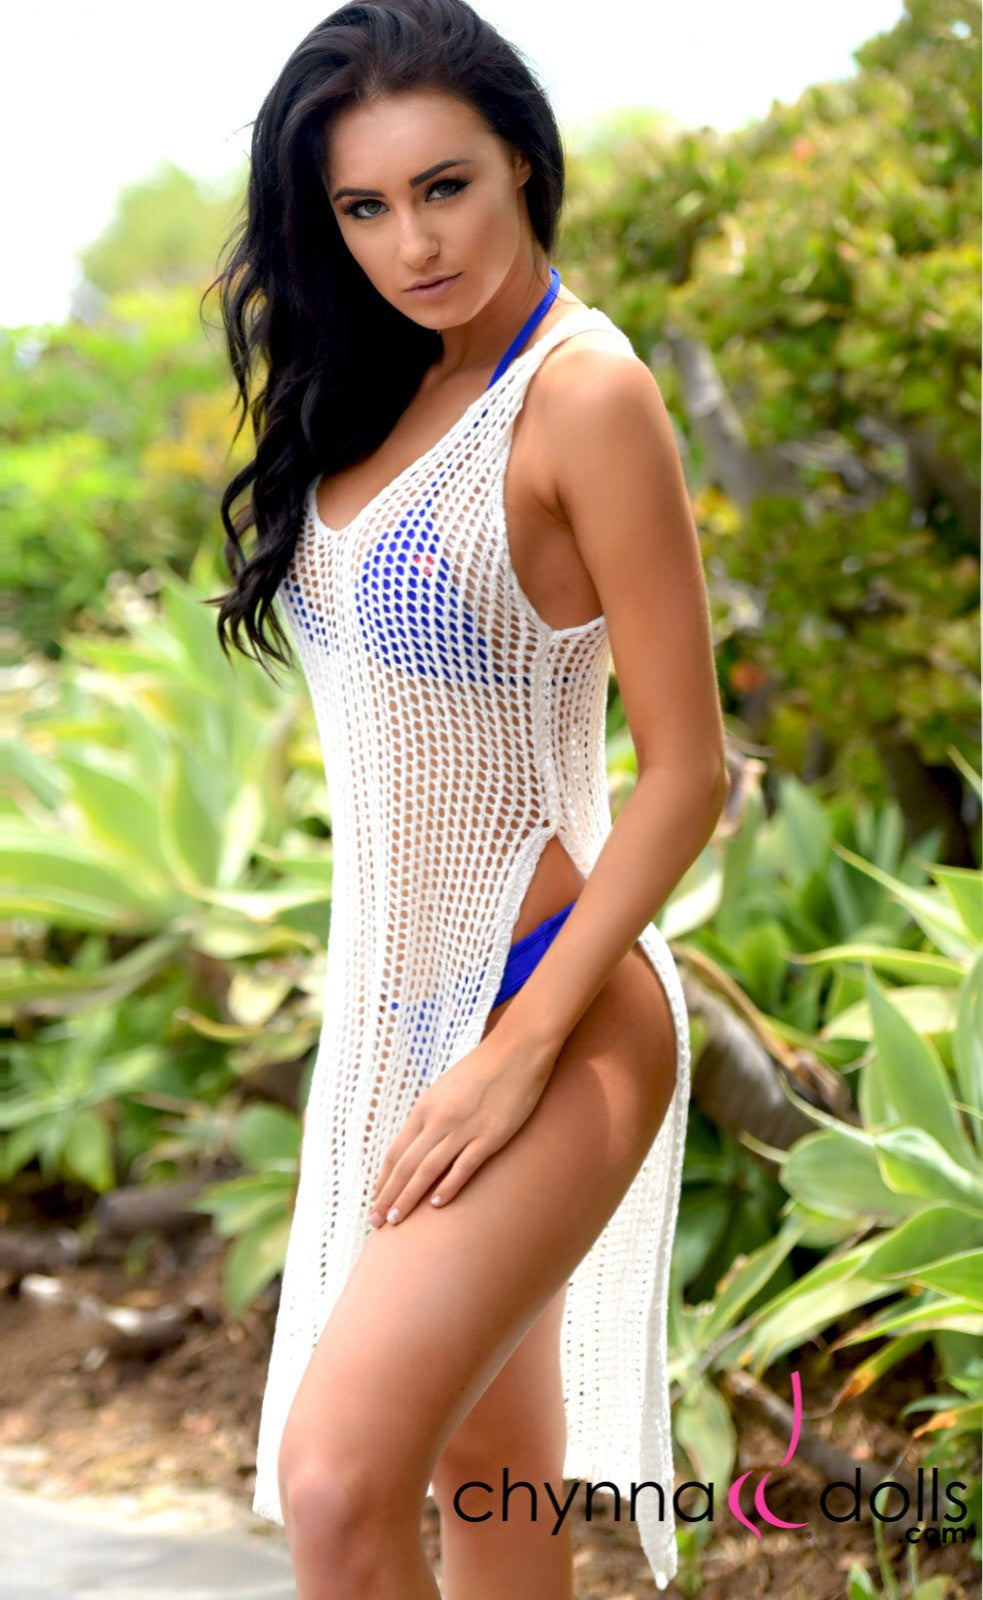 Melrose: Crochet Dress Coverup with Side Slits in White - Chynna Dolls Swimwear